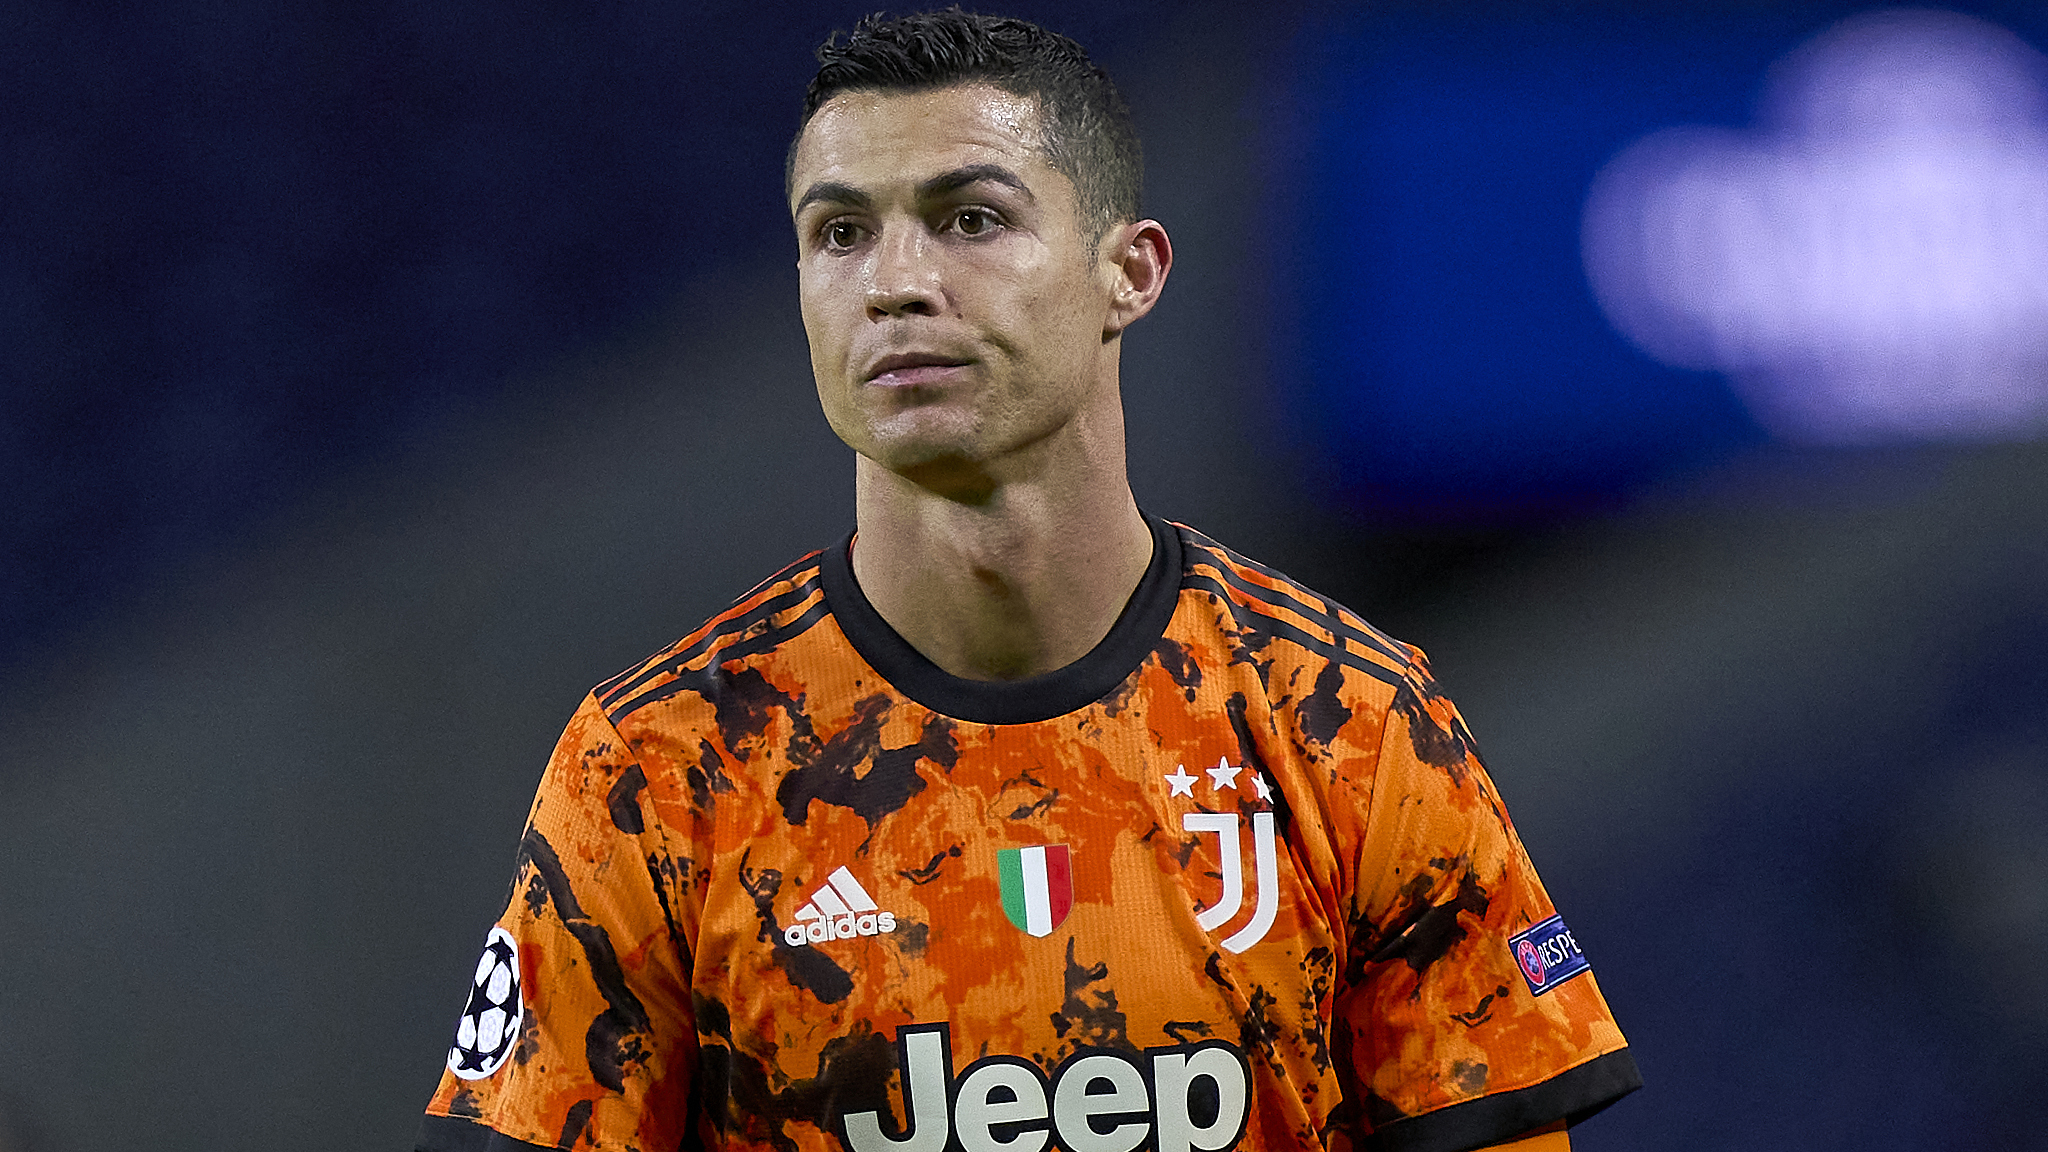 Ronaldo S Juventus Stunned Man City Go 10 Points Clear At Top Cgtn